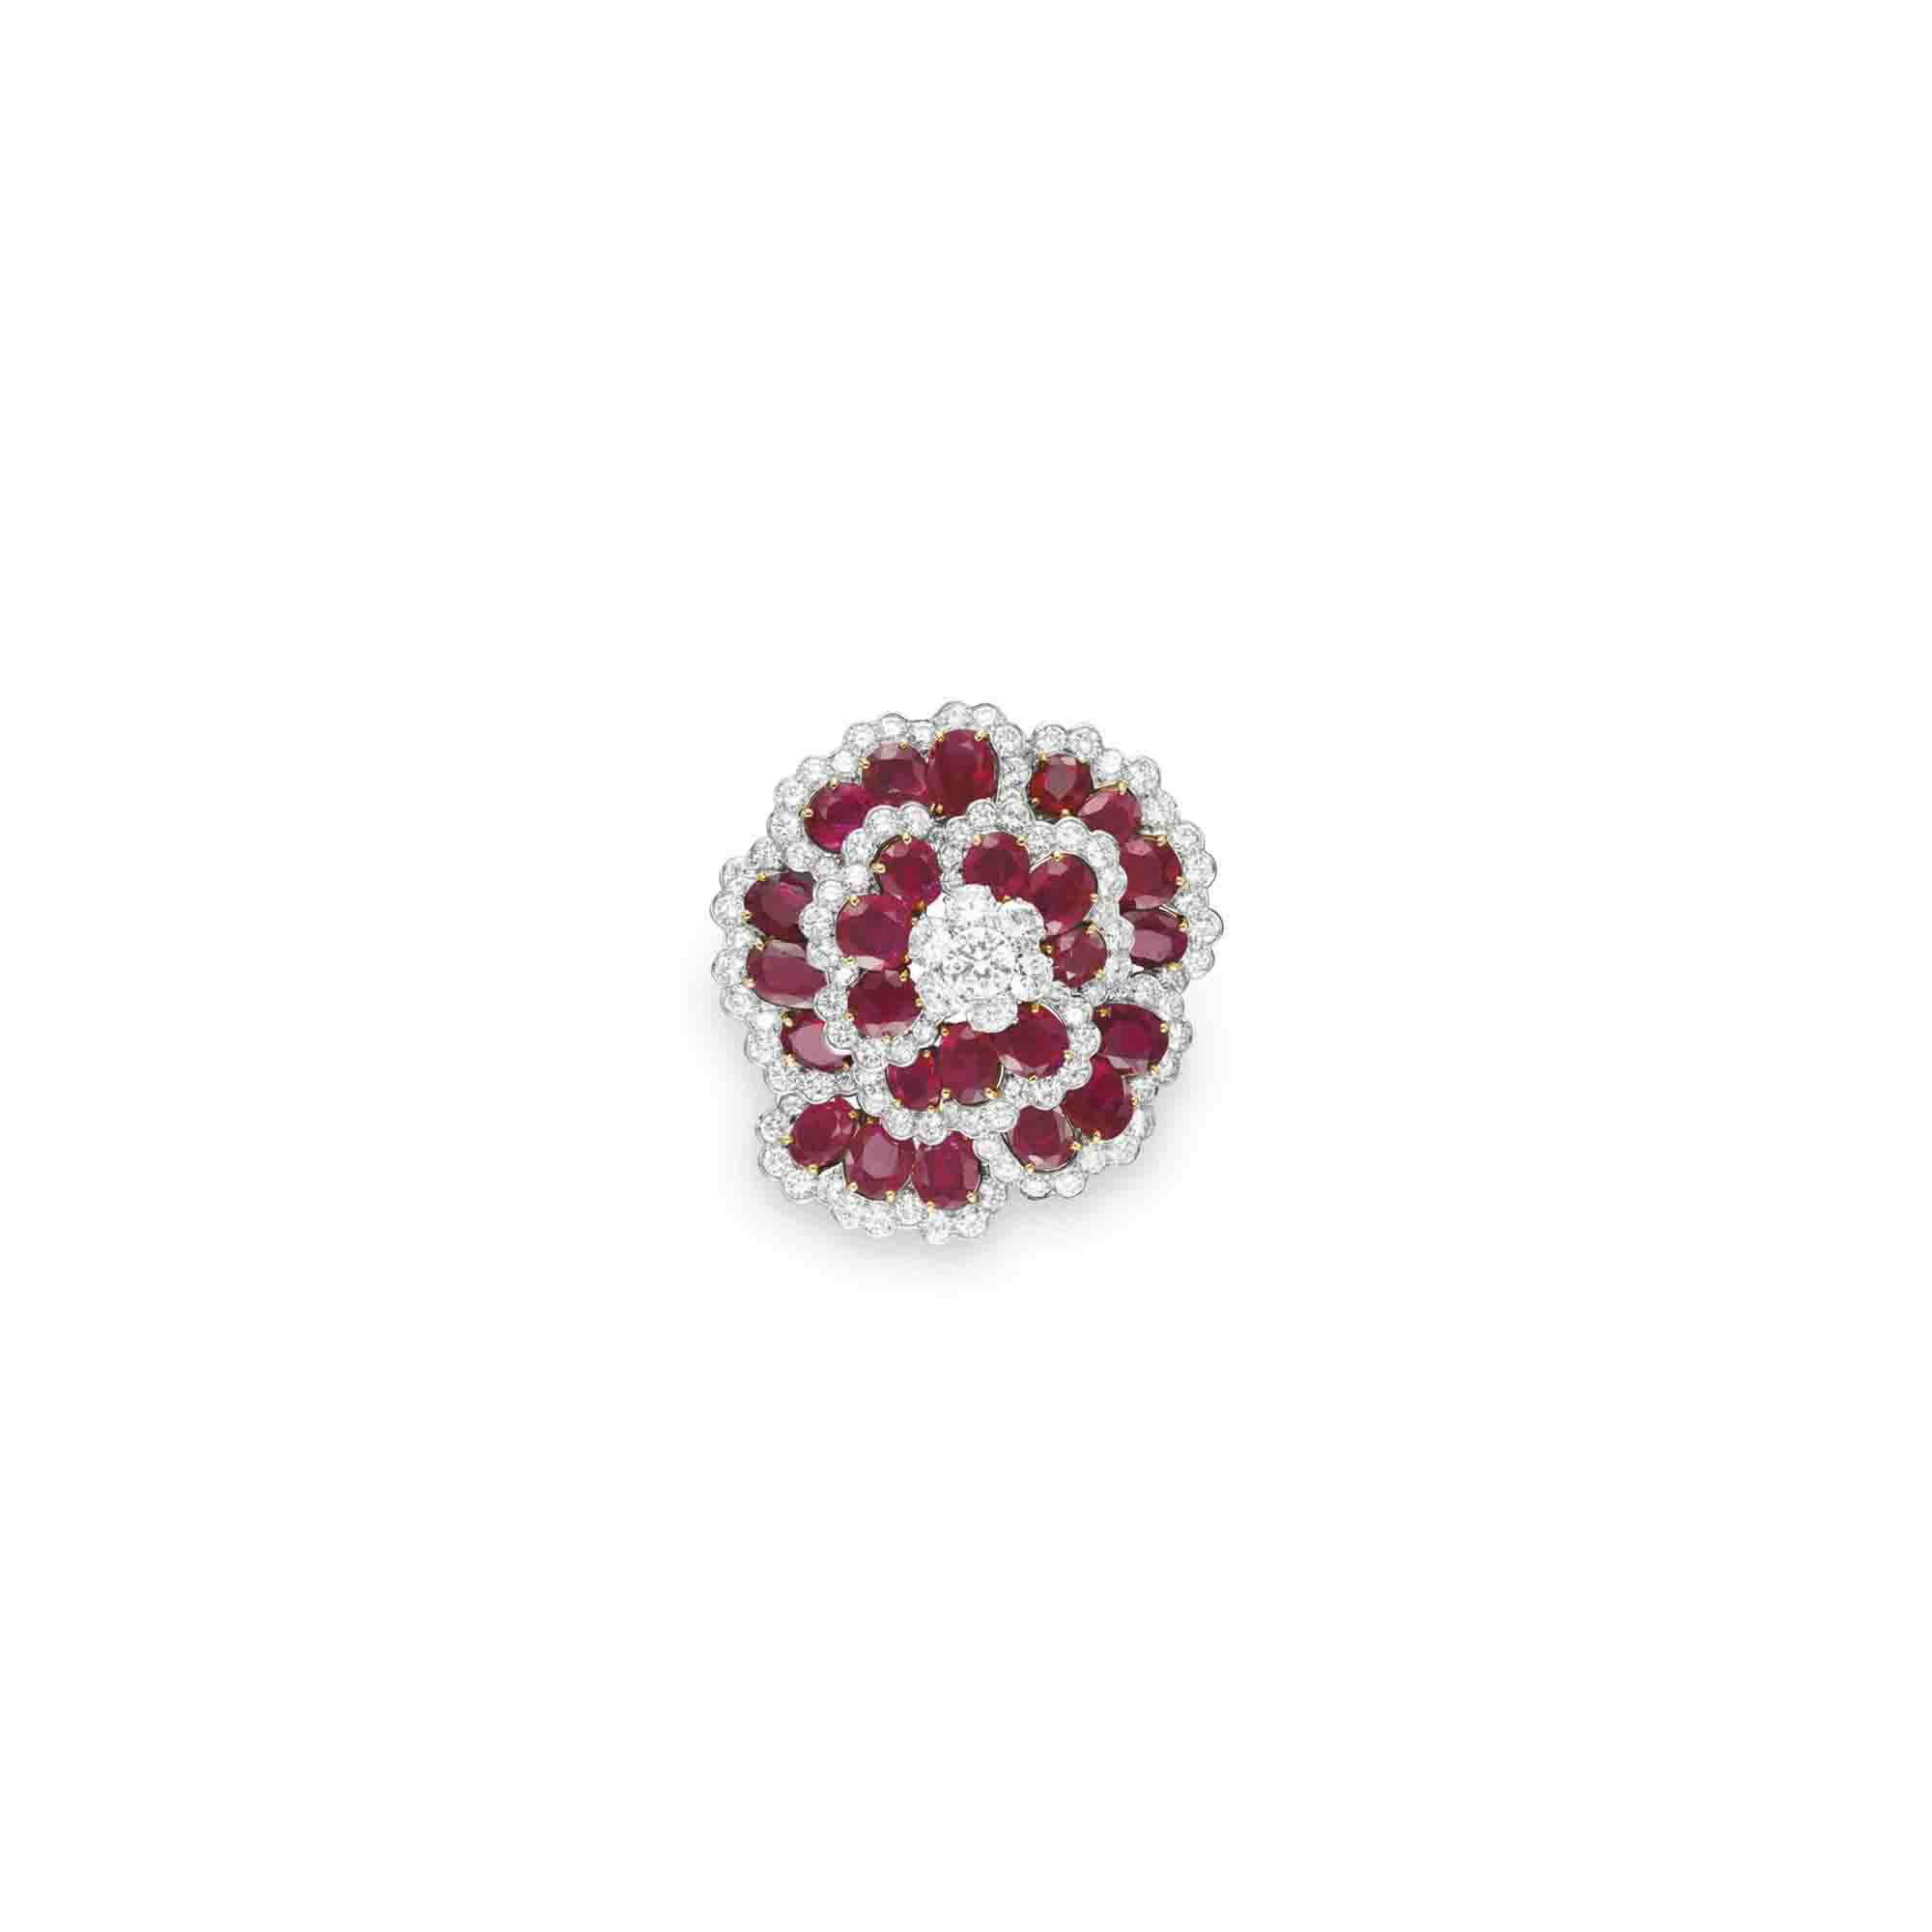 "A RUBY AND DIAMOND ""CAMELIA"" BROOCH, BY VAN CLEEF & ARPELS"